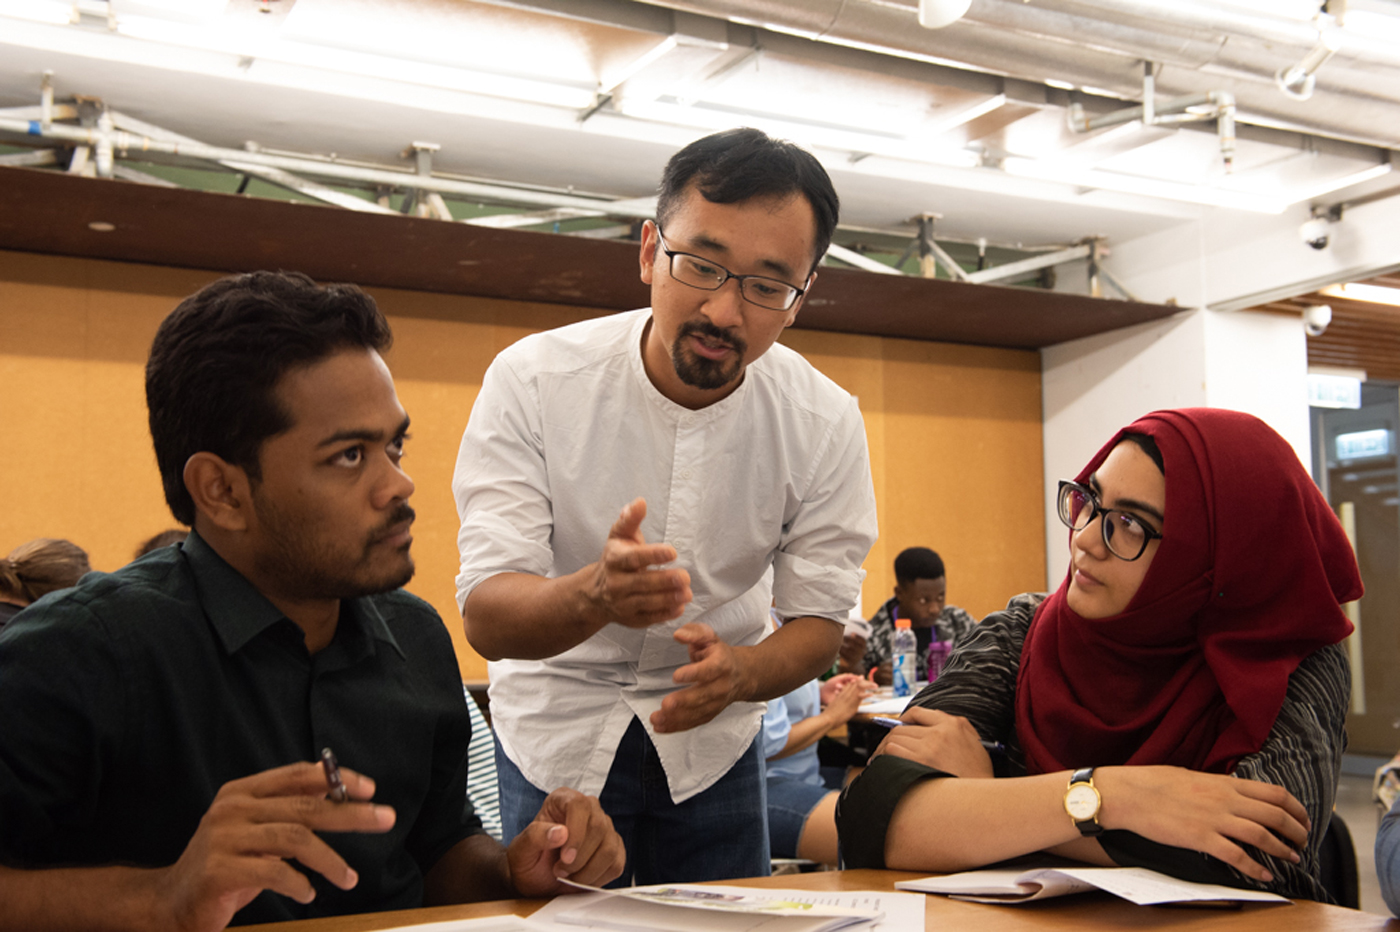 Guest lecturer Mr. Howard Tam explains the concept of design thinking to the students of the Association of Commonwealth Universities (ACU) Summer School